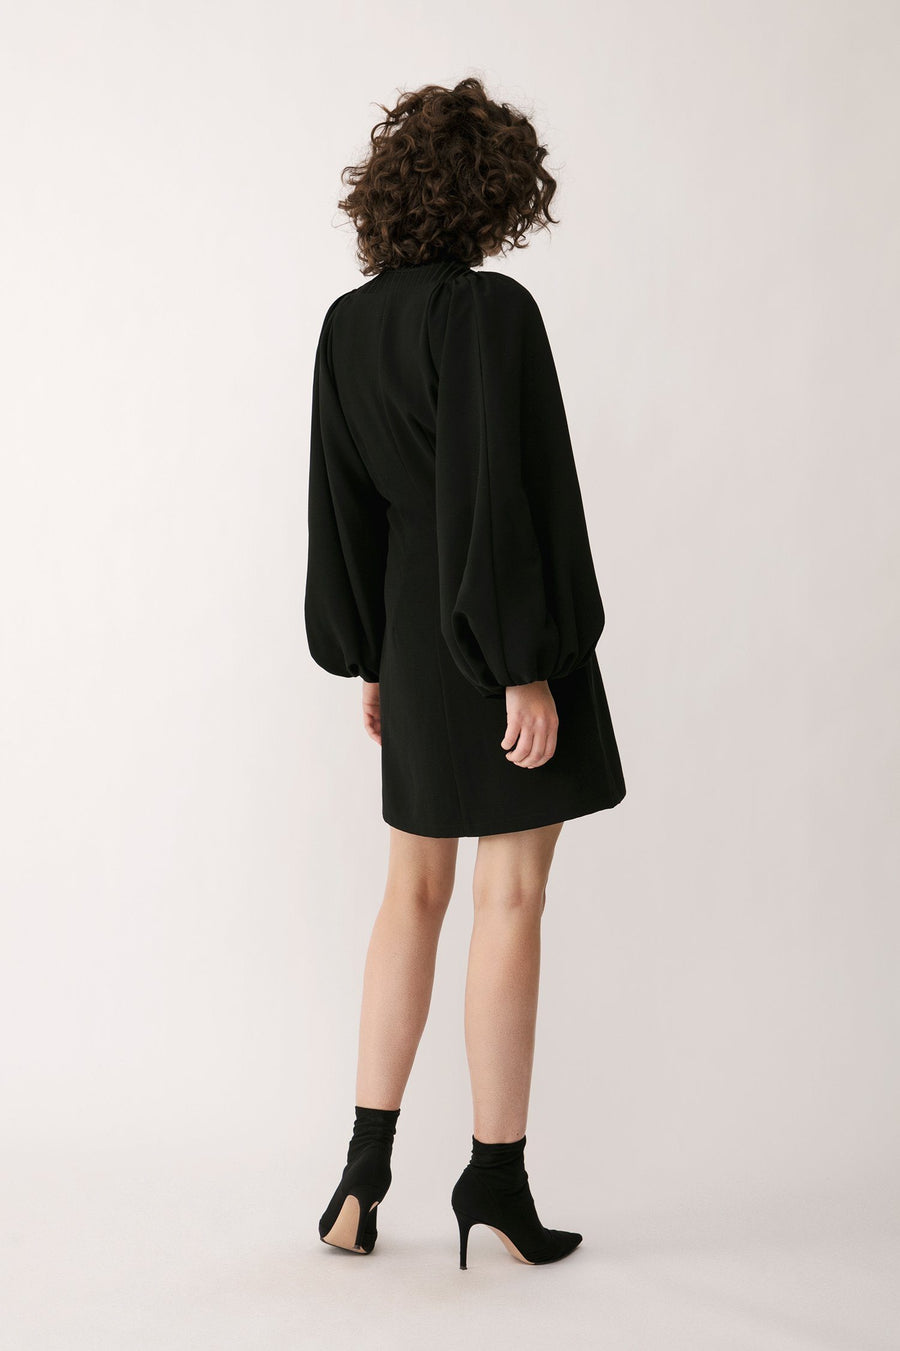 BROLO DRESS - BLACK Dress Stylein